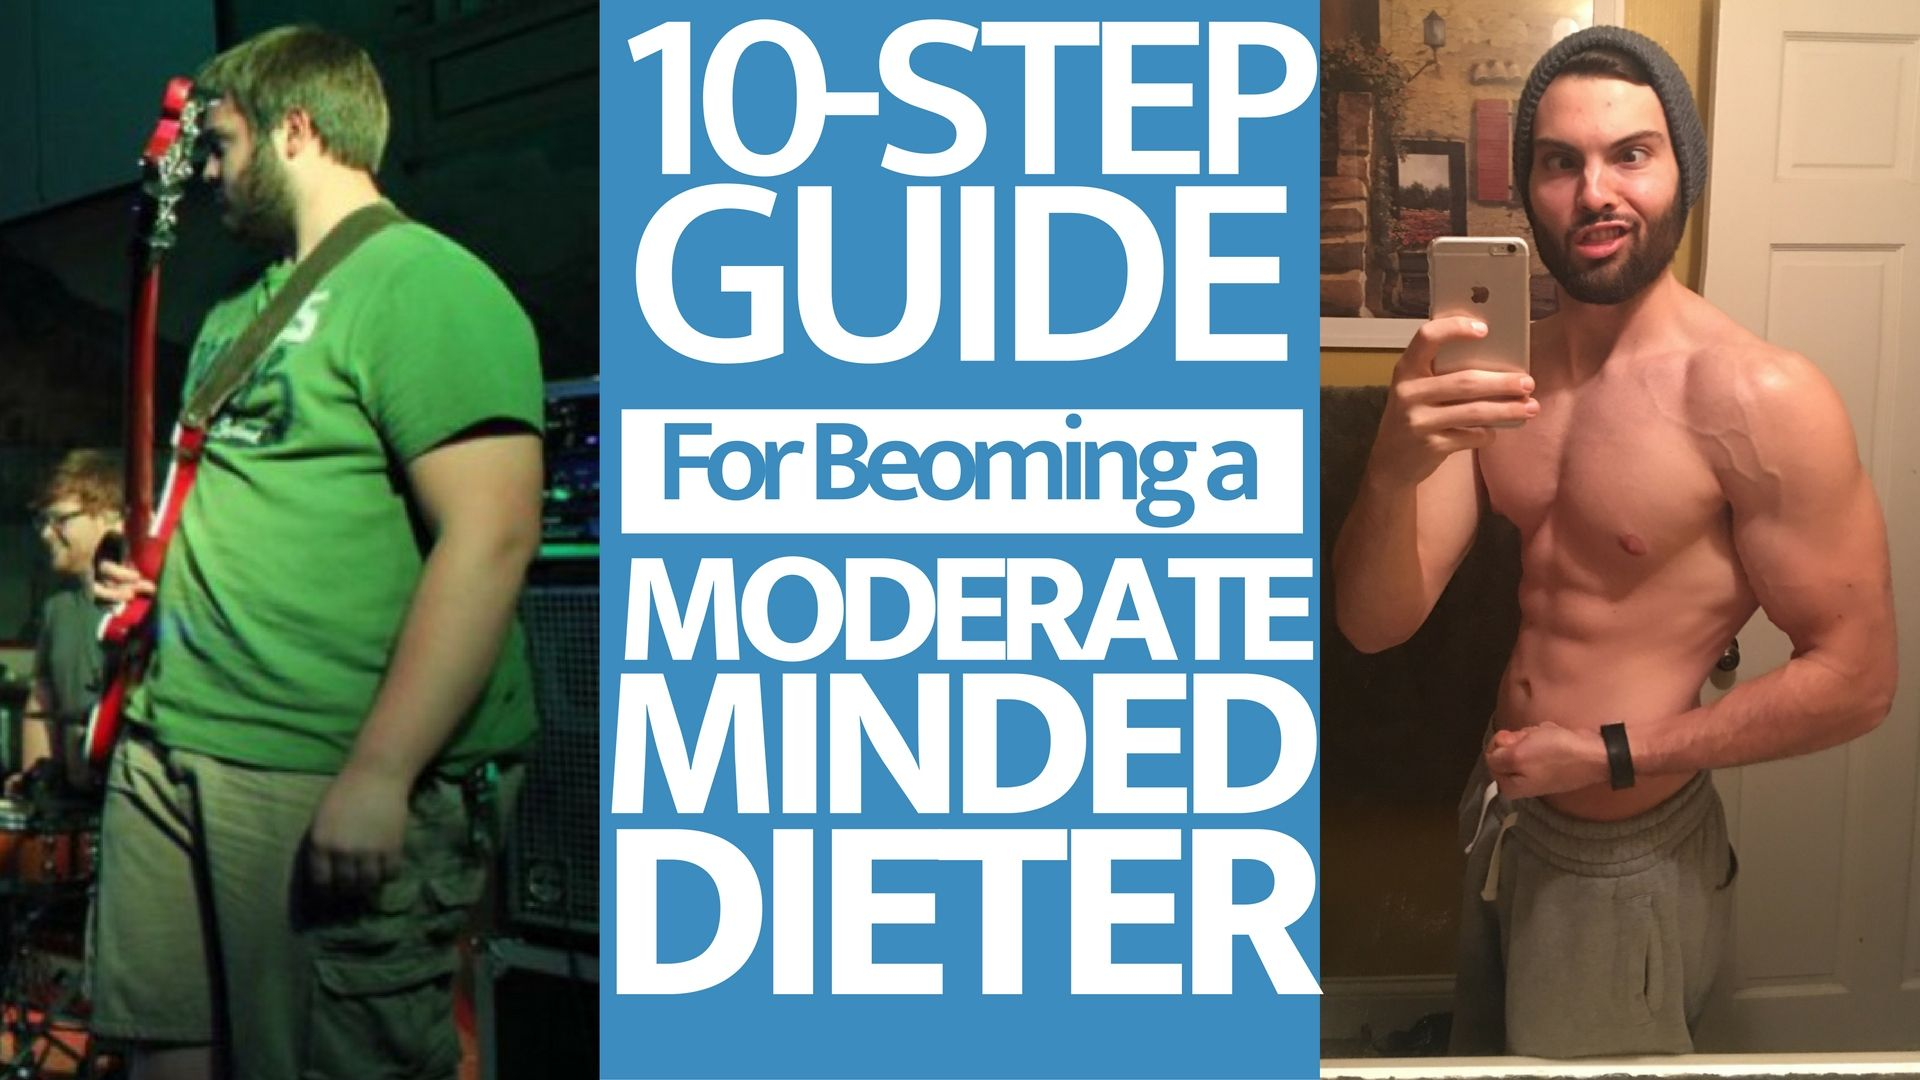 moderation while dieting